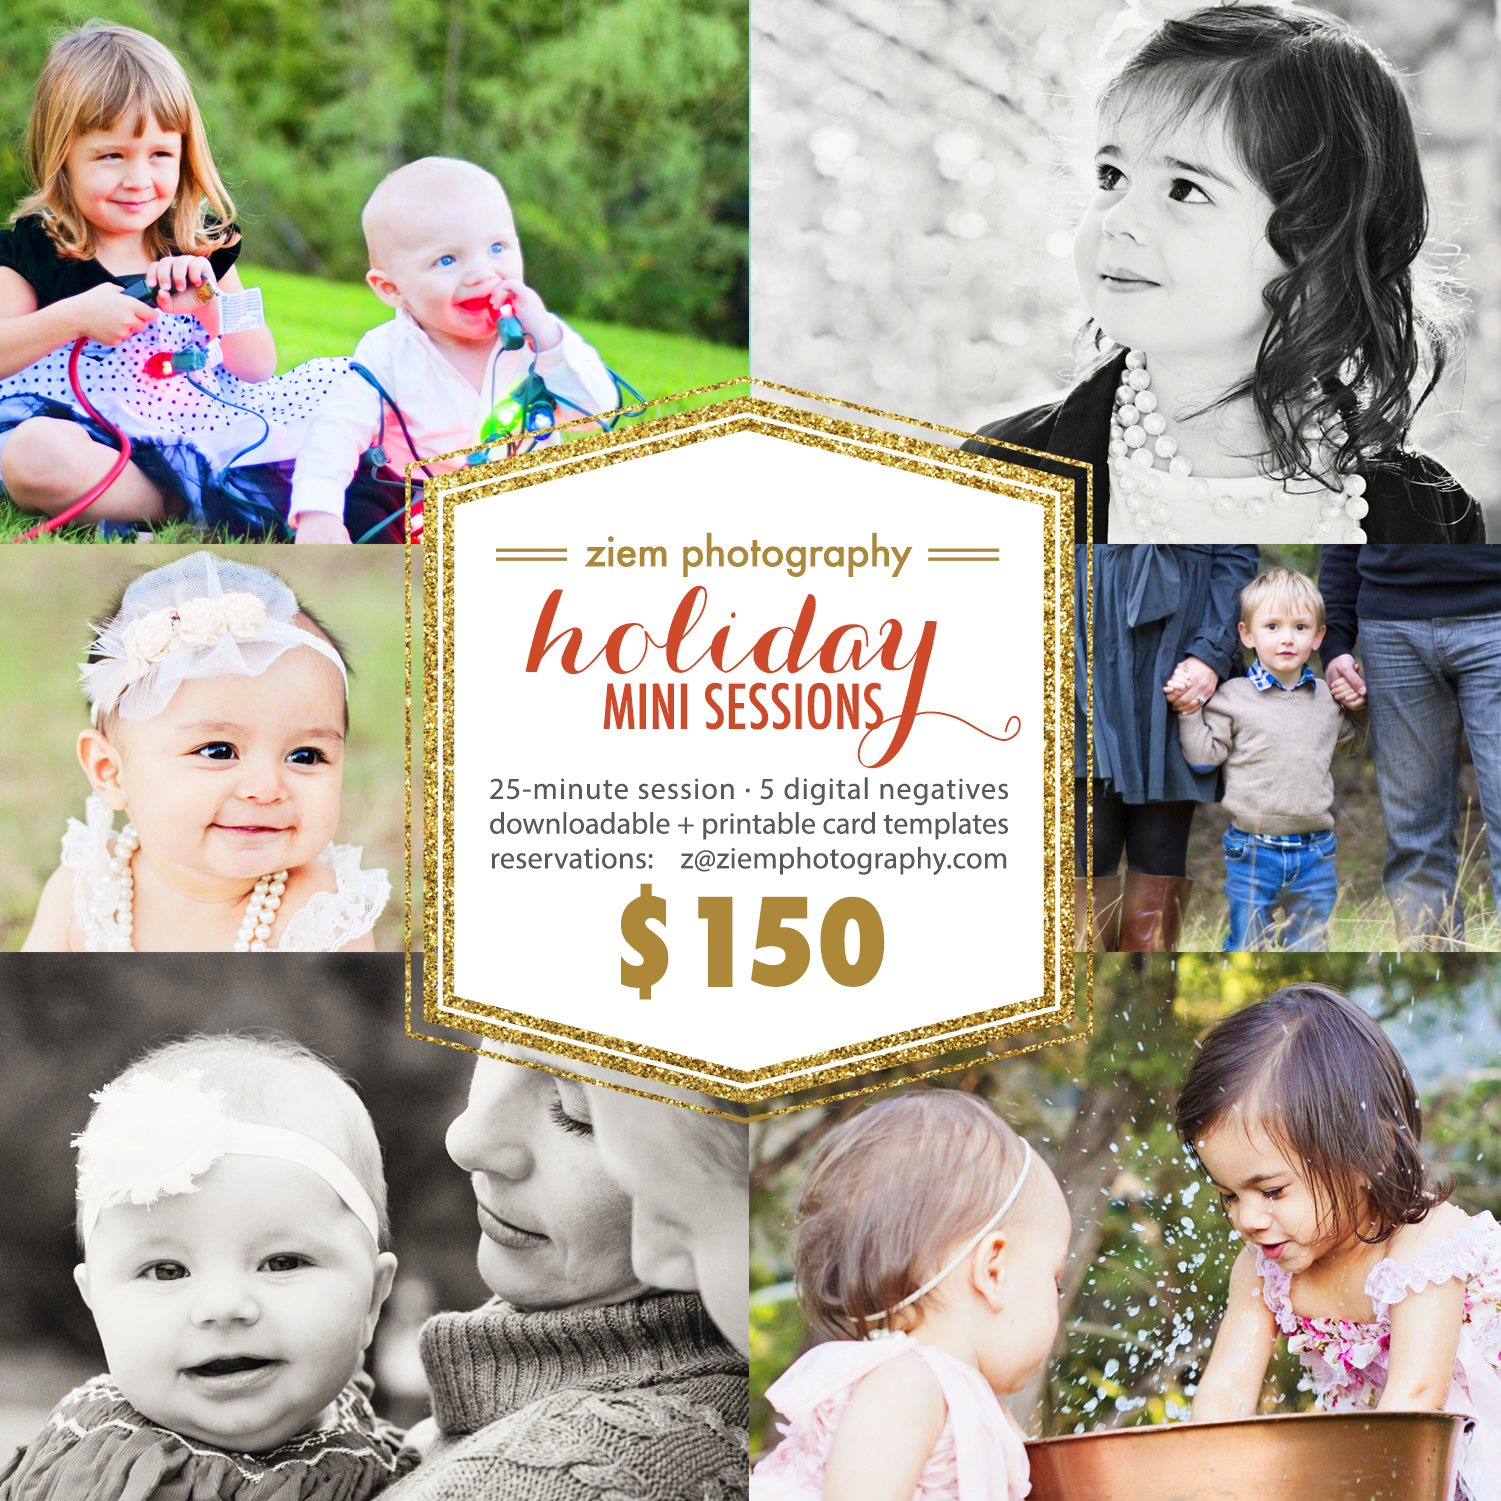 austin holiday mini sessions | ziem photography